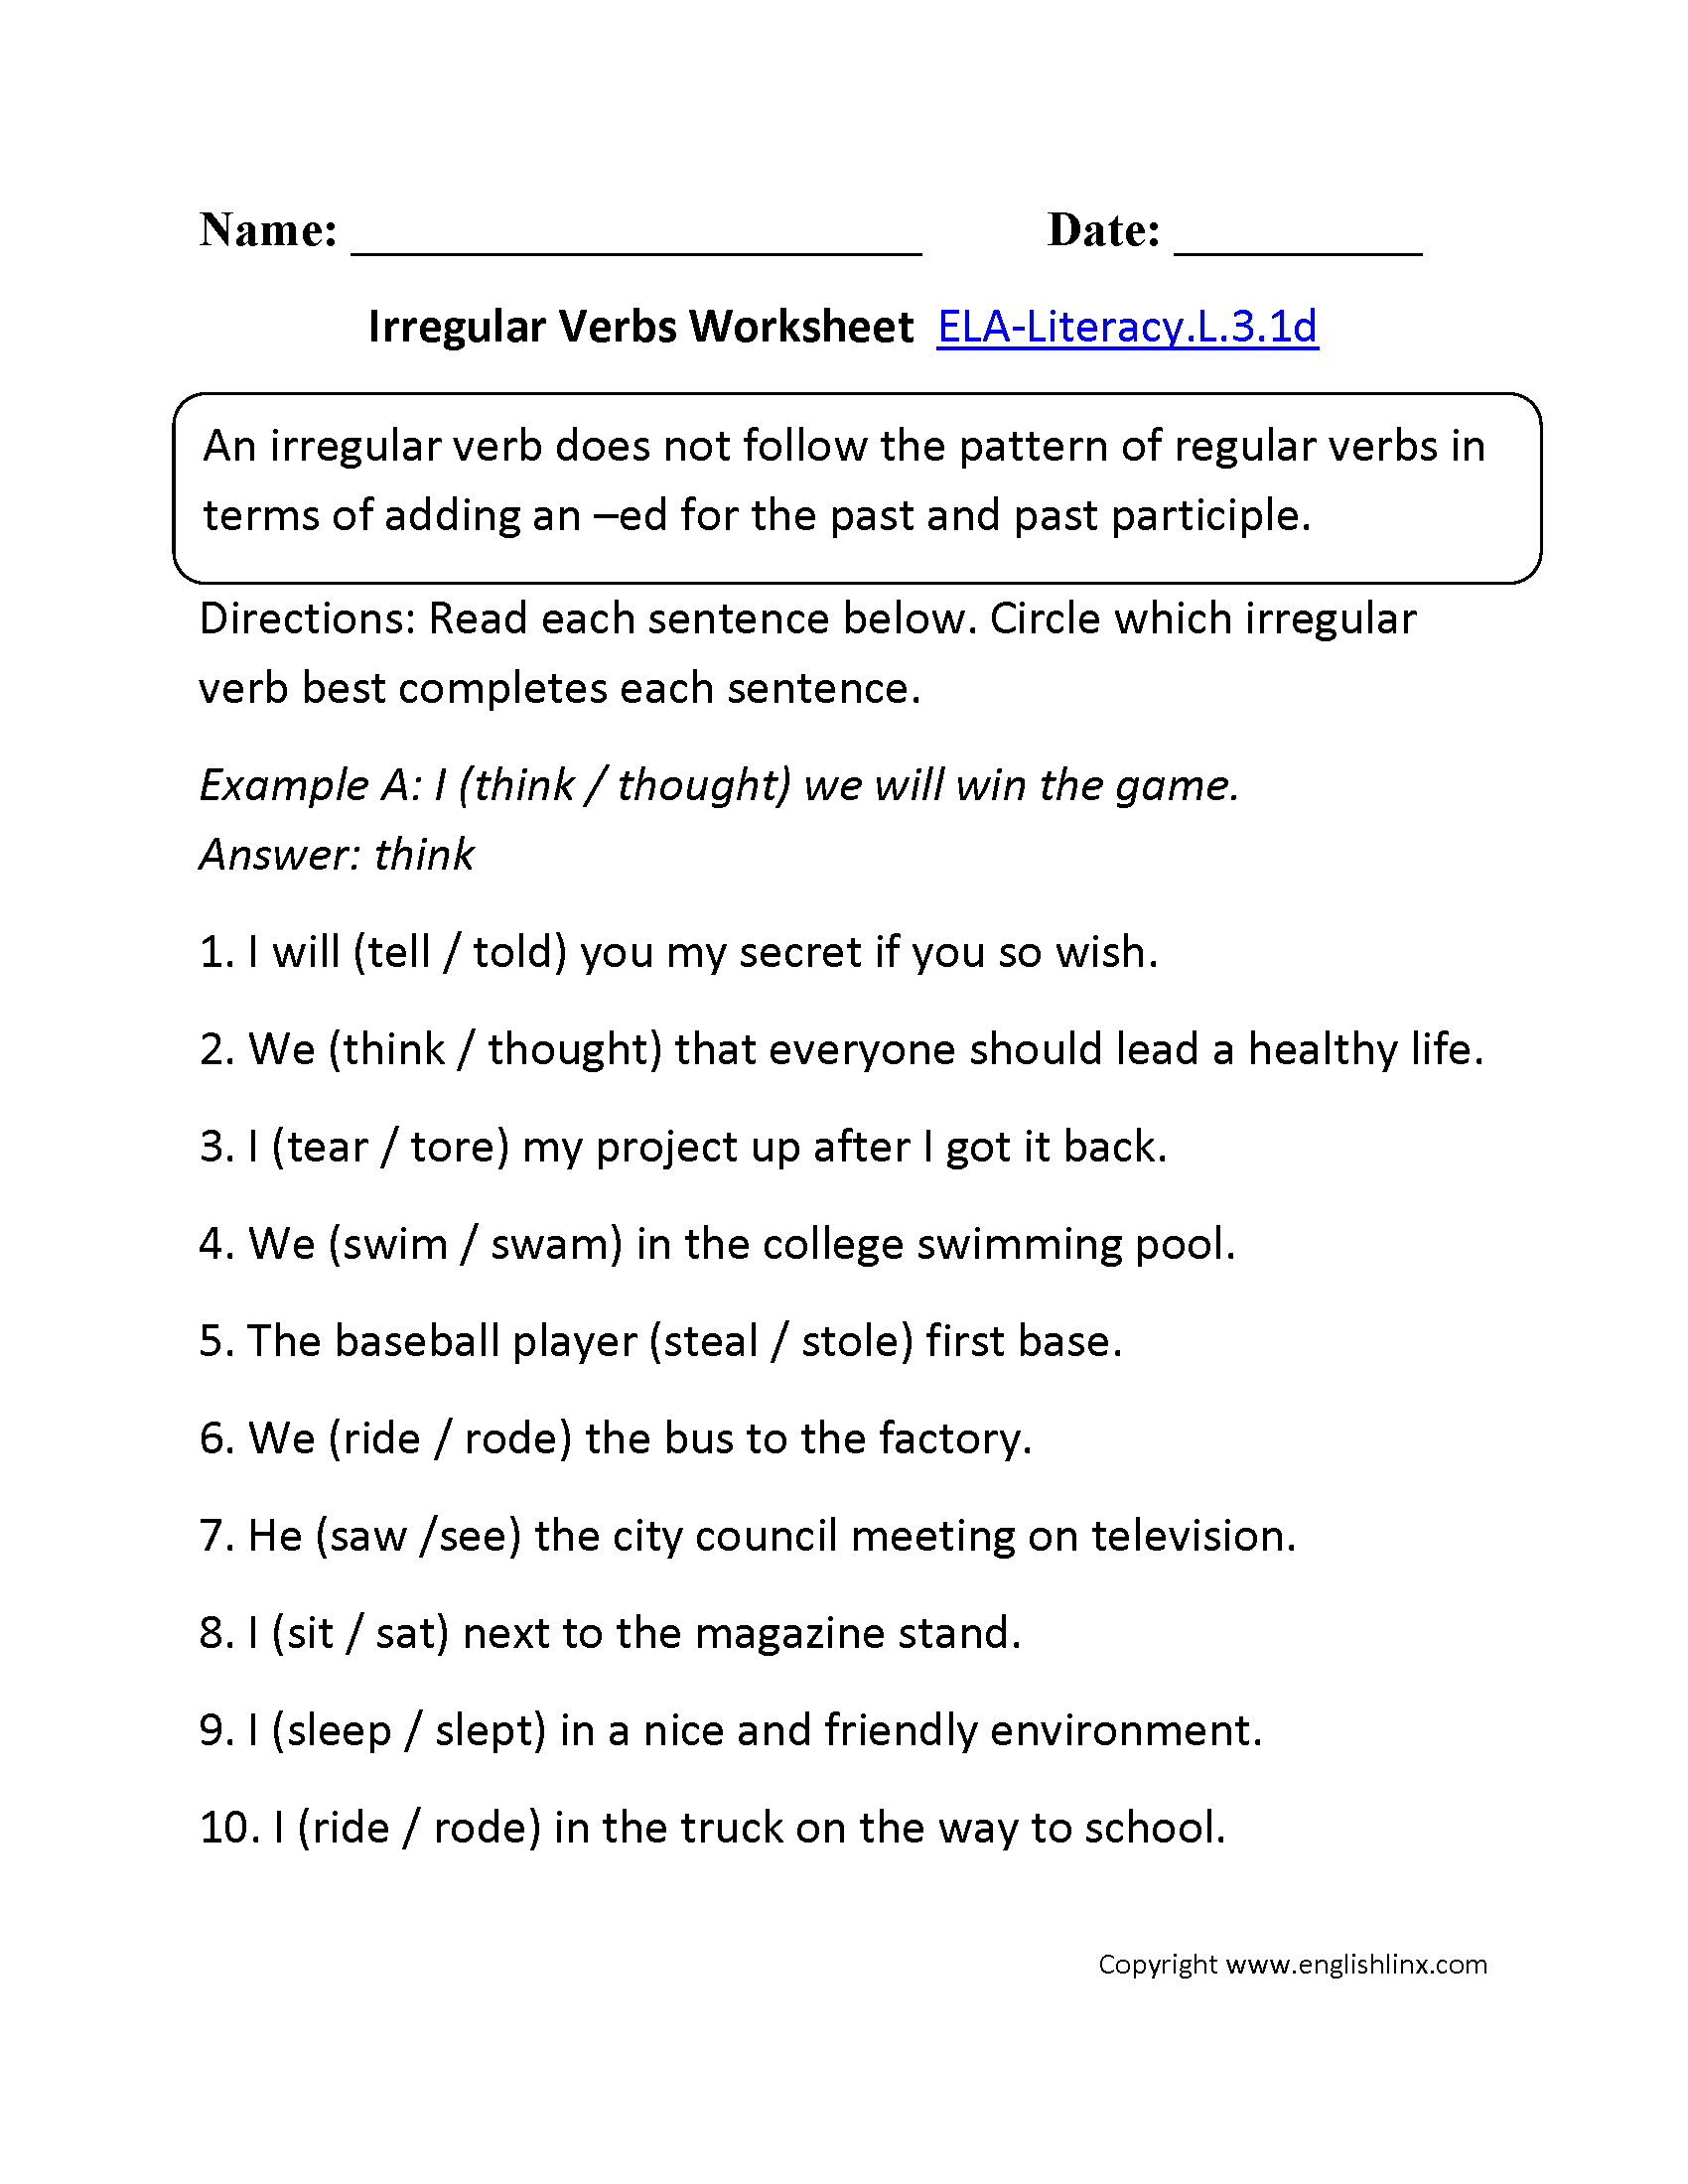 Worksheet Worksheets On Verbs For Grade 3 3rd grade common core language worksheets irregular verbs worksheet 1 ela literacy l 3 1d worksheet